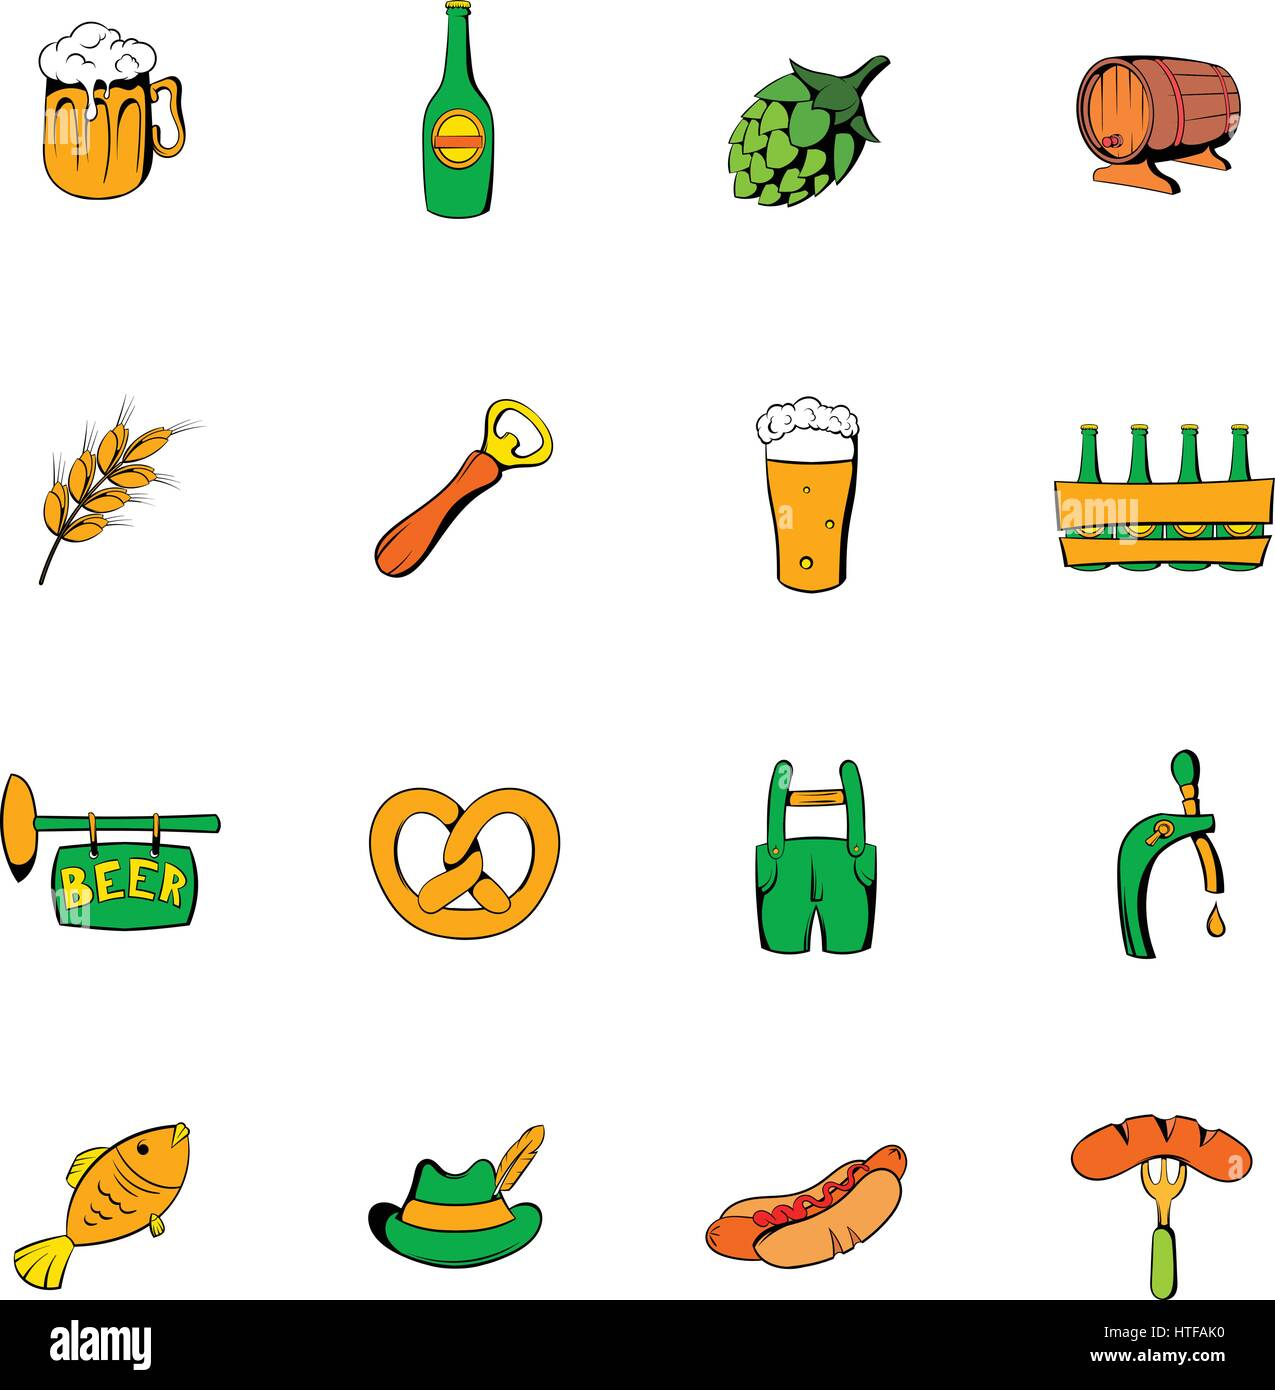 Oktoberfest set icons set in cartoon style isolated on white background vector illustration - Stock Photo